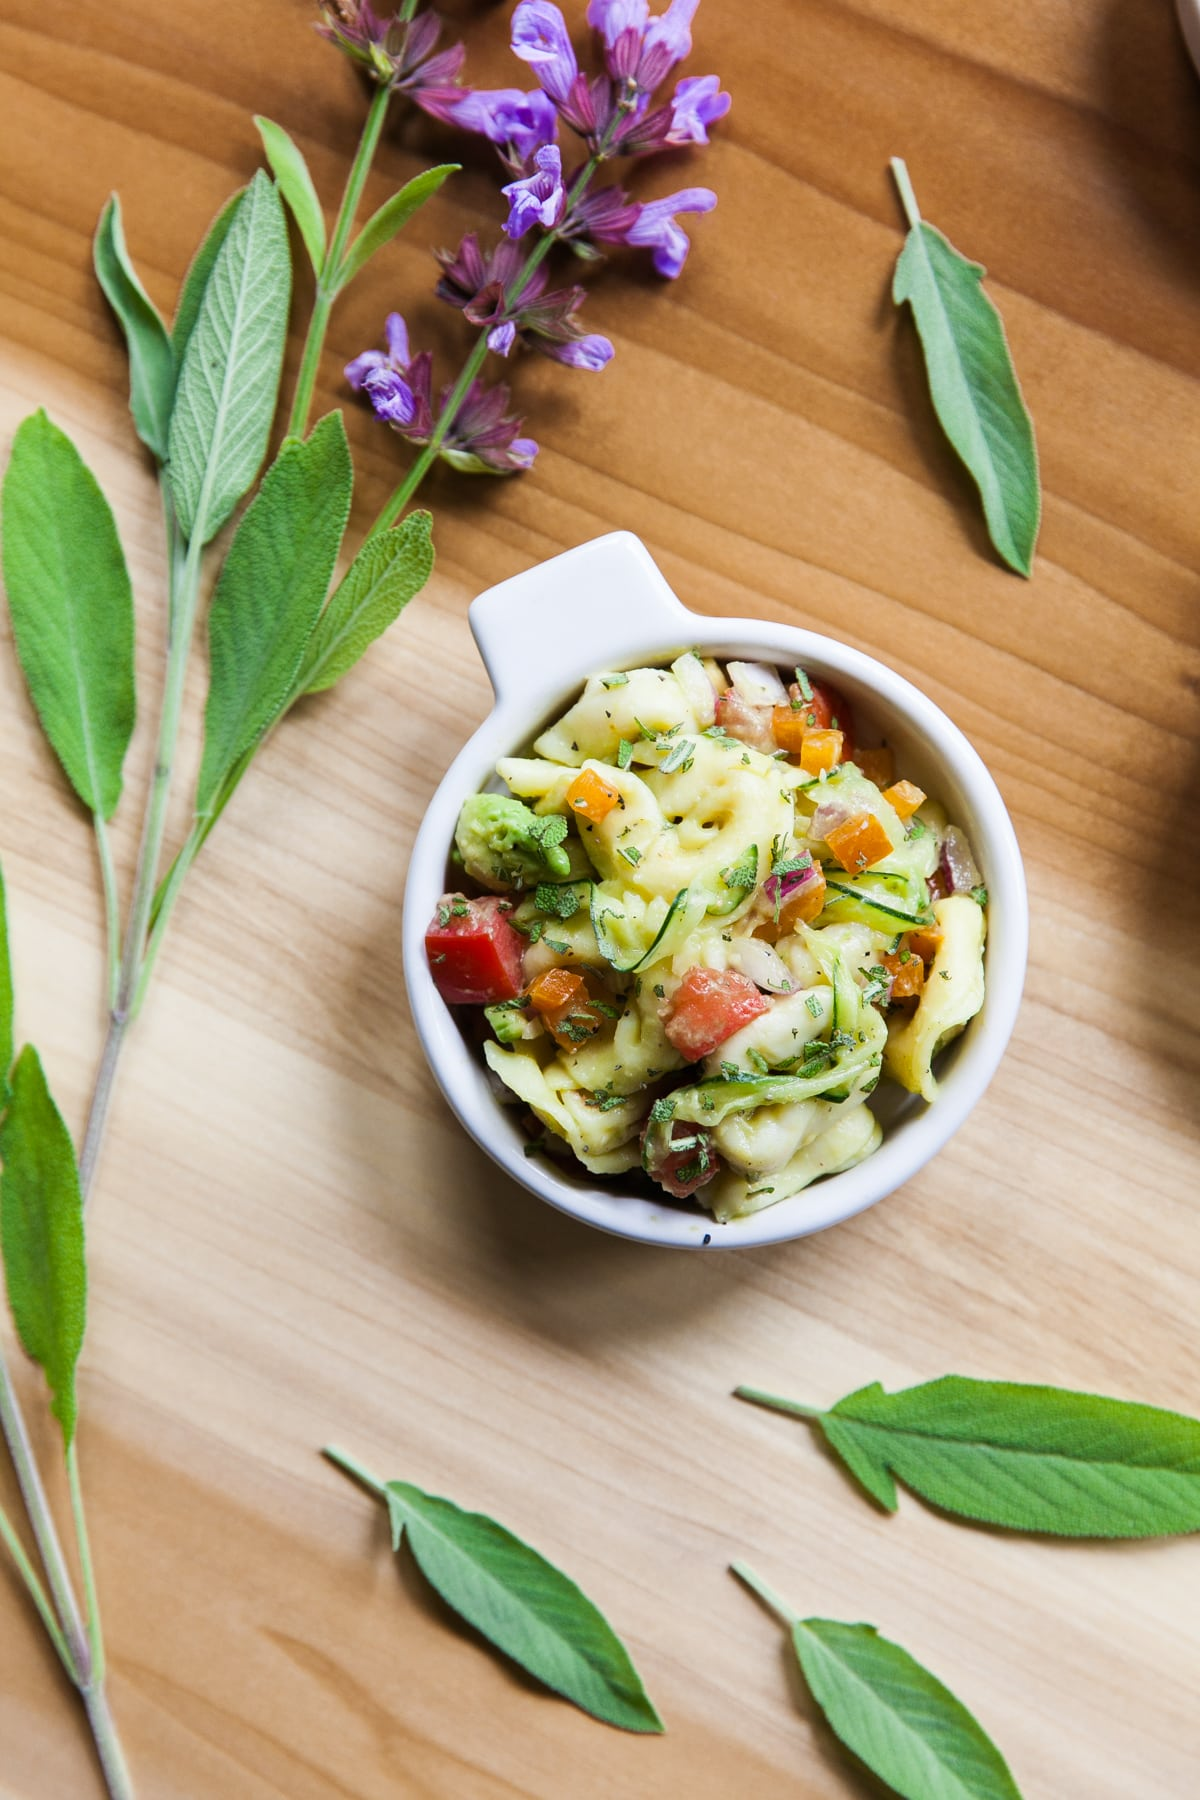 Tortellini Salad with Avocado, Veggies + Fresh Sage | Pasta Salad Recipe | Good Potluck Dishes | Picnic Food | Easy Side Dishes for Potluck | Jessica Brigham | Magazine Ready for Life